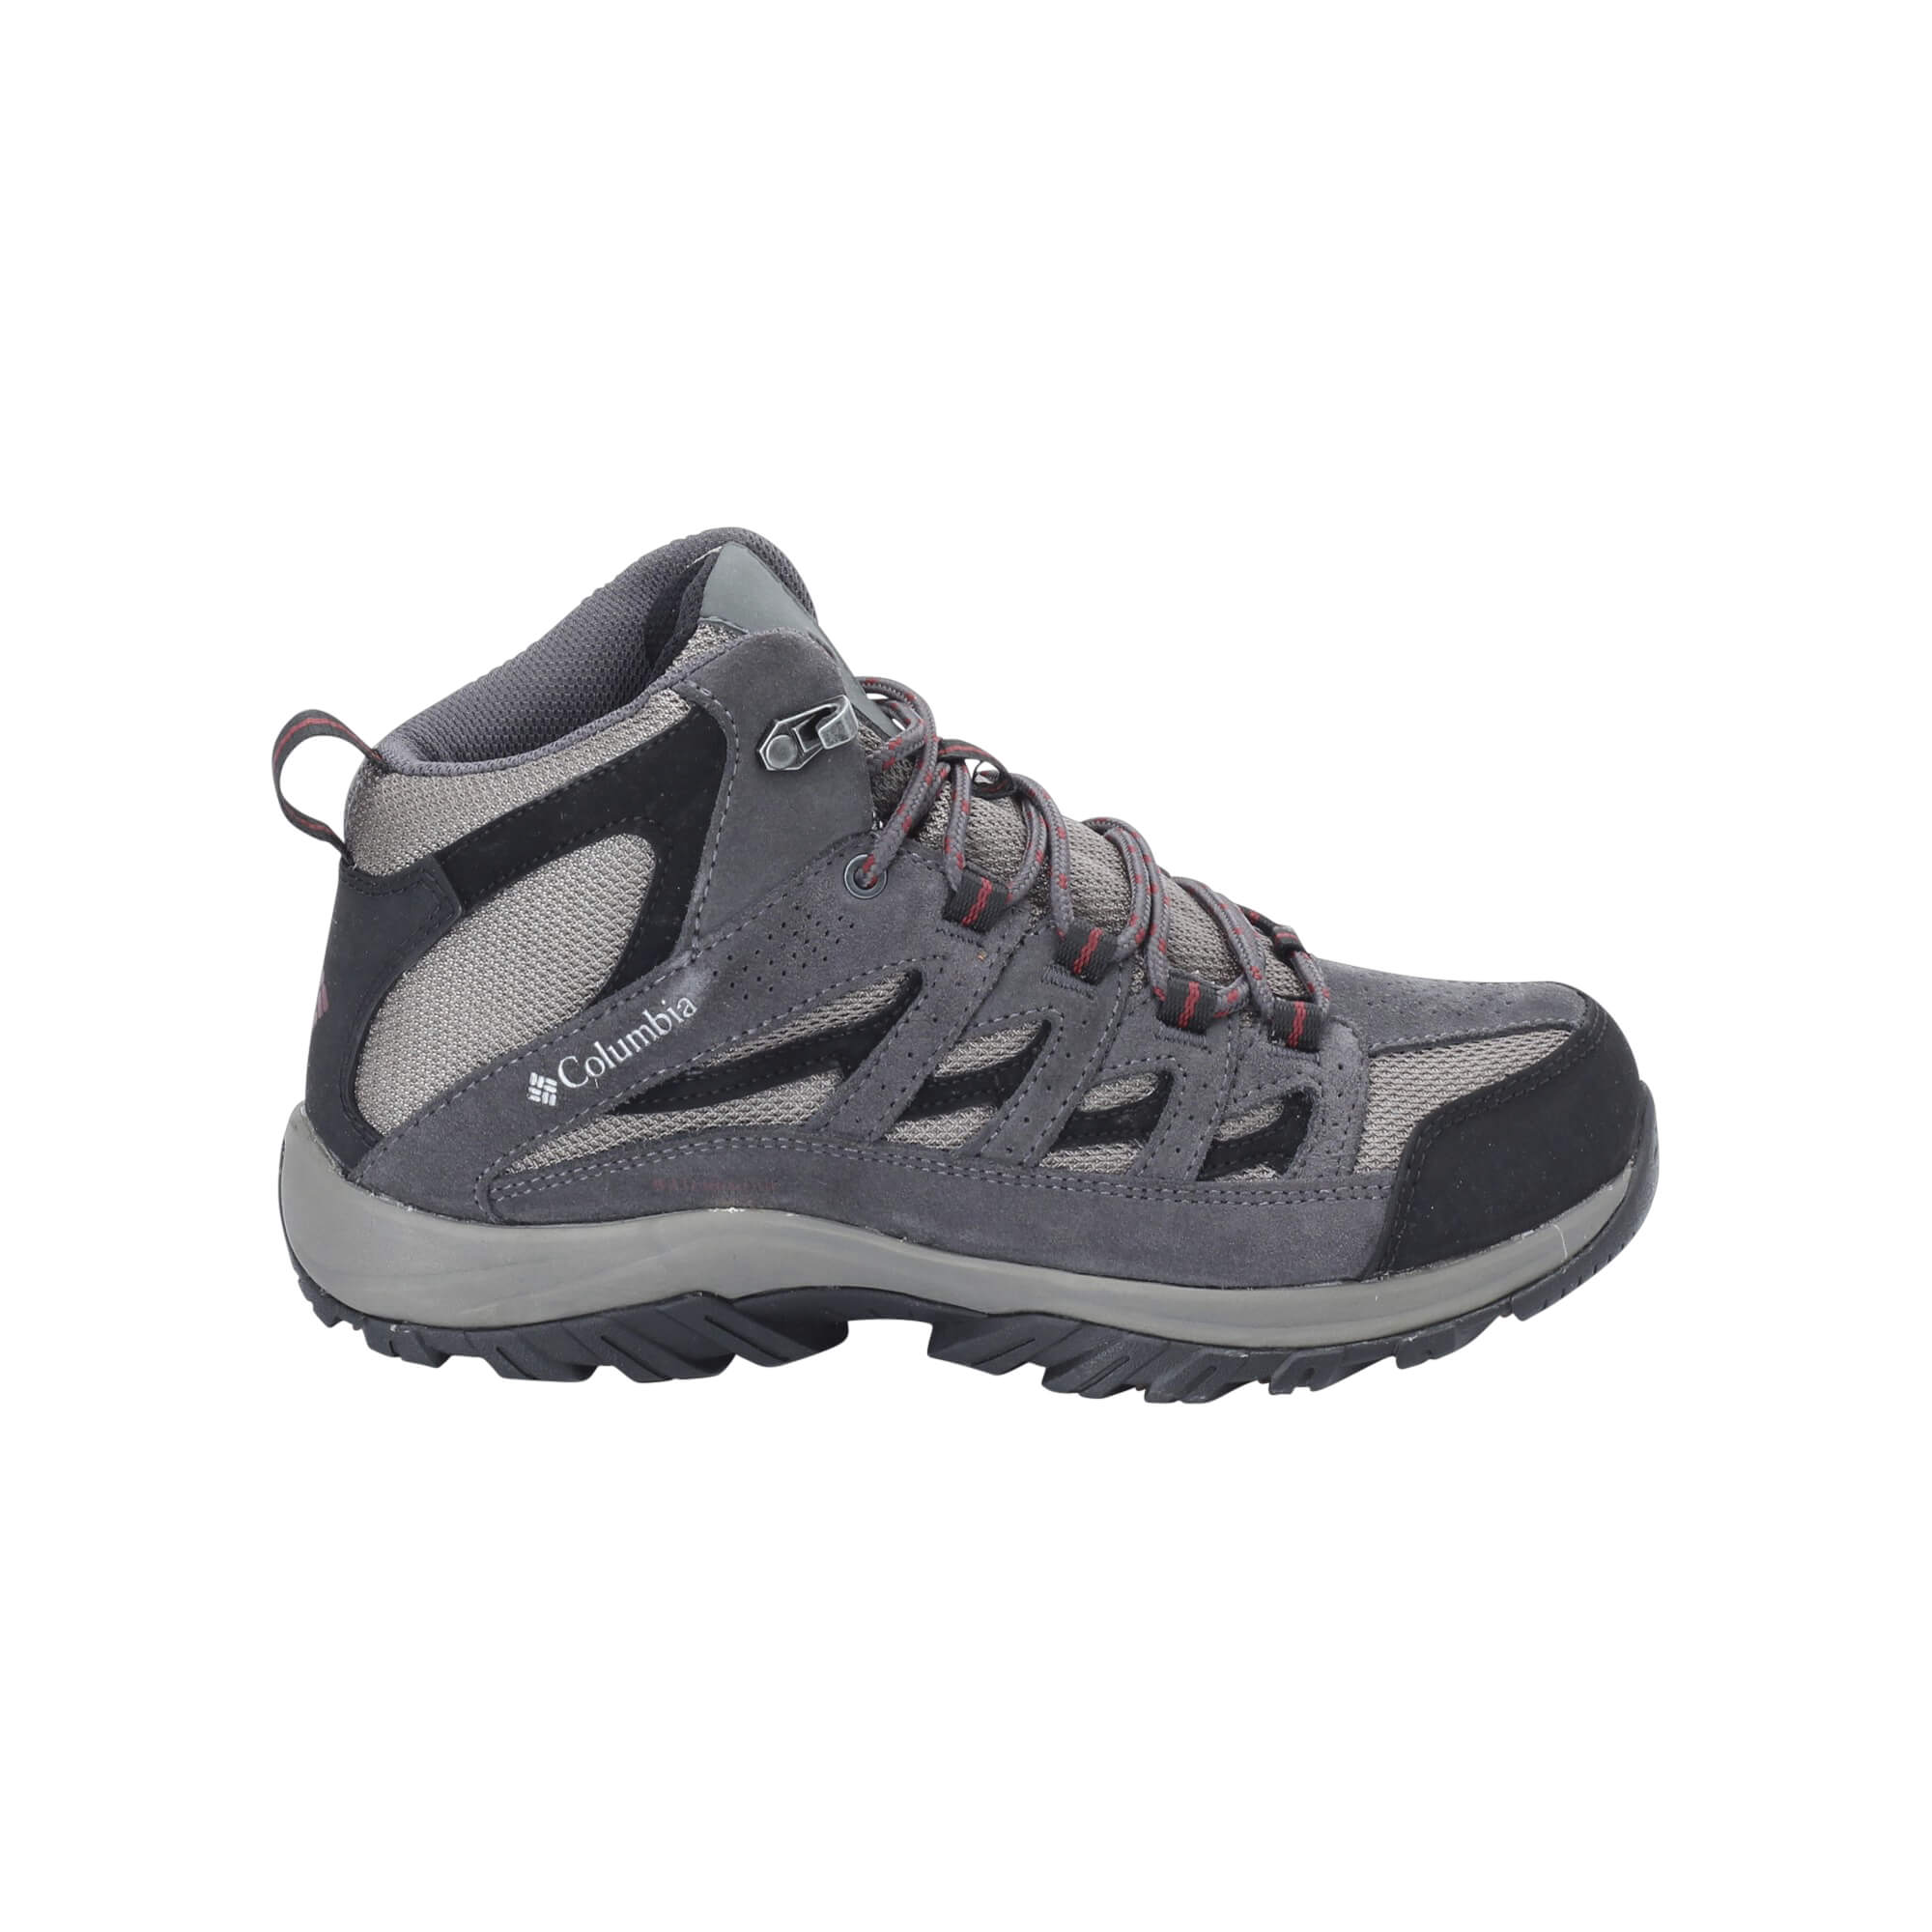 Crestwood Mid Waterproof Wide imagine produs